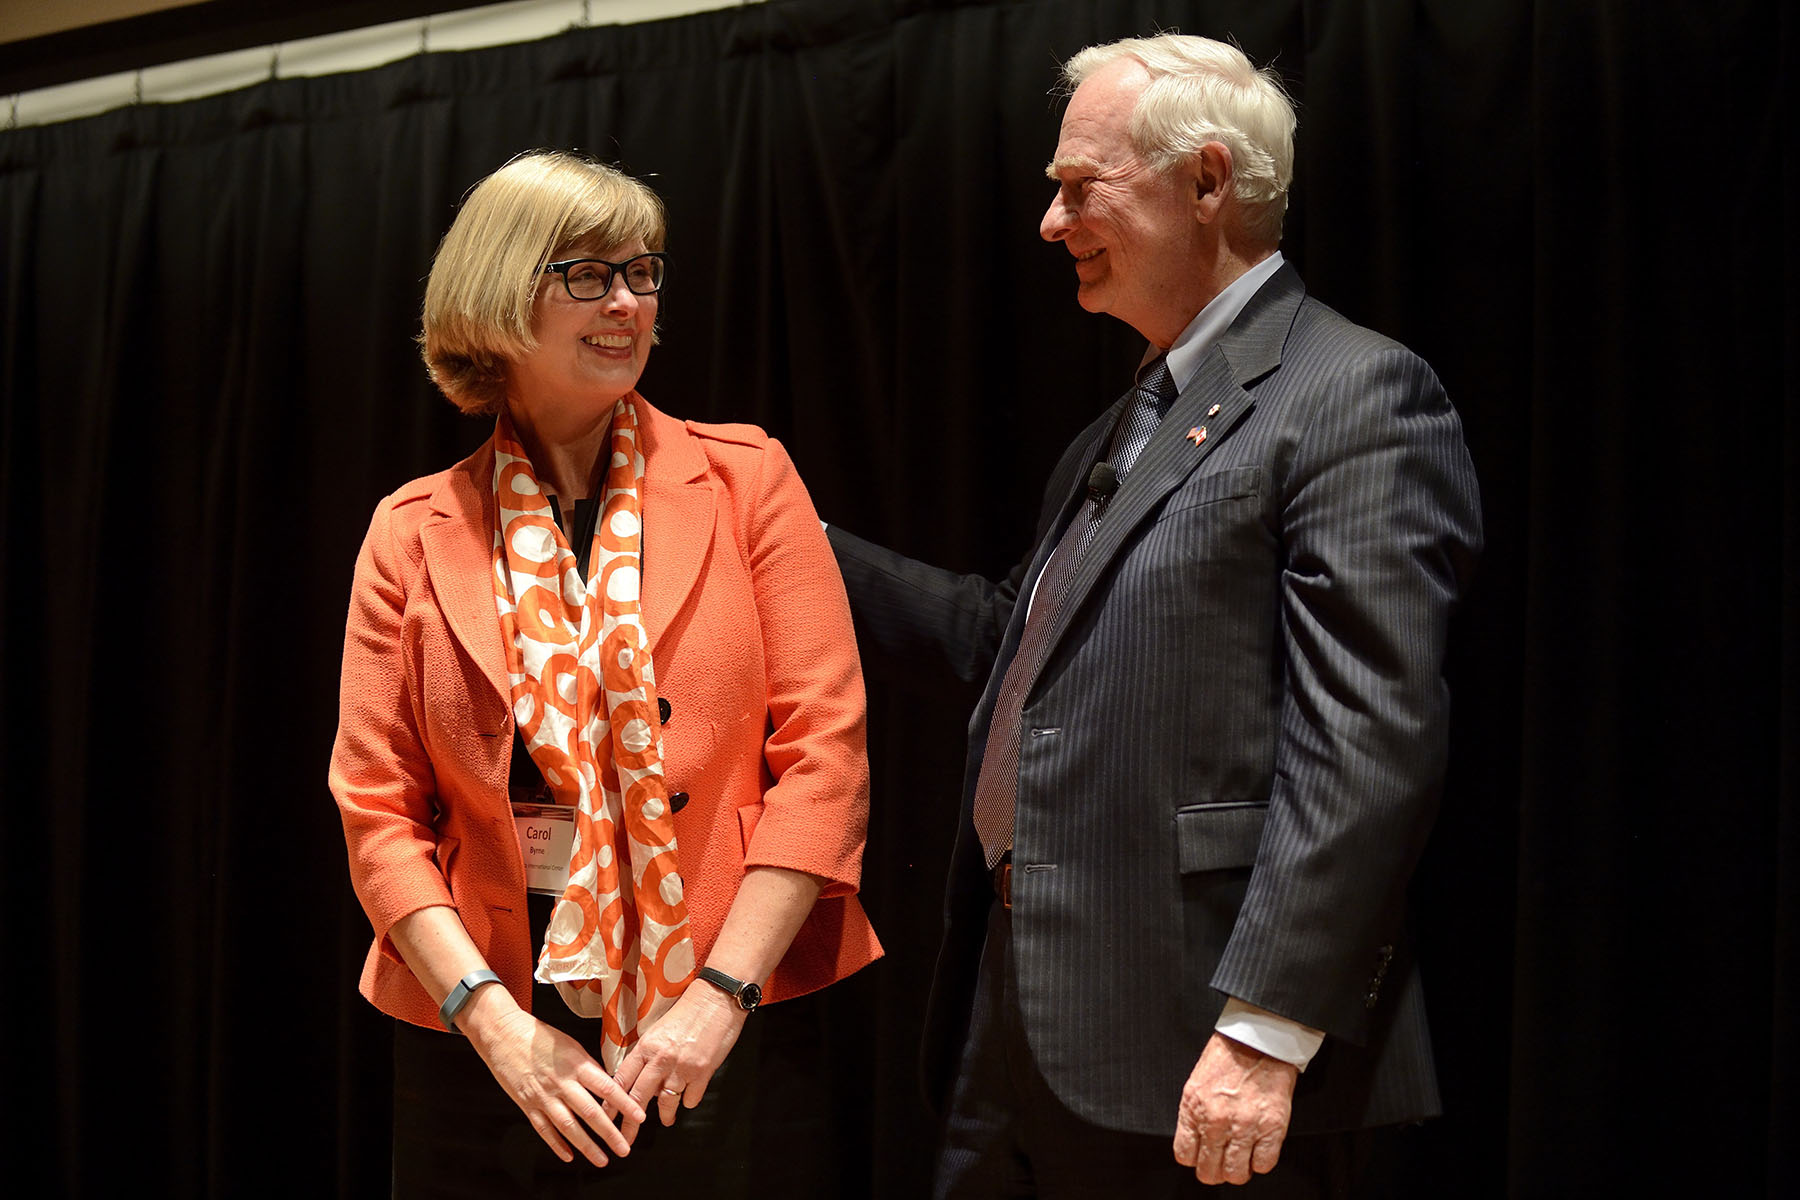 The event was held at the University of Minnesota and was co-organized with the Minnesota International Center (MIC) and the Humphrey School of Public Affairs at the University of Minnesota. His Excellency is seen here with Carol Engebretson Byrne, President, Minnesota International Center.